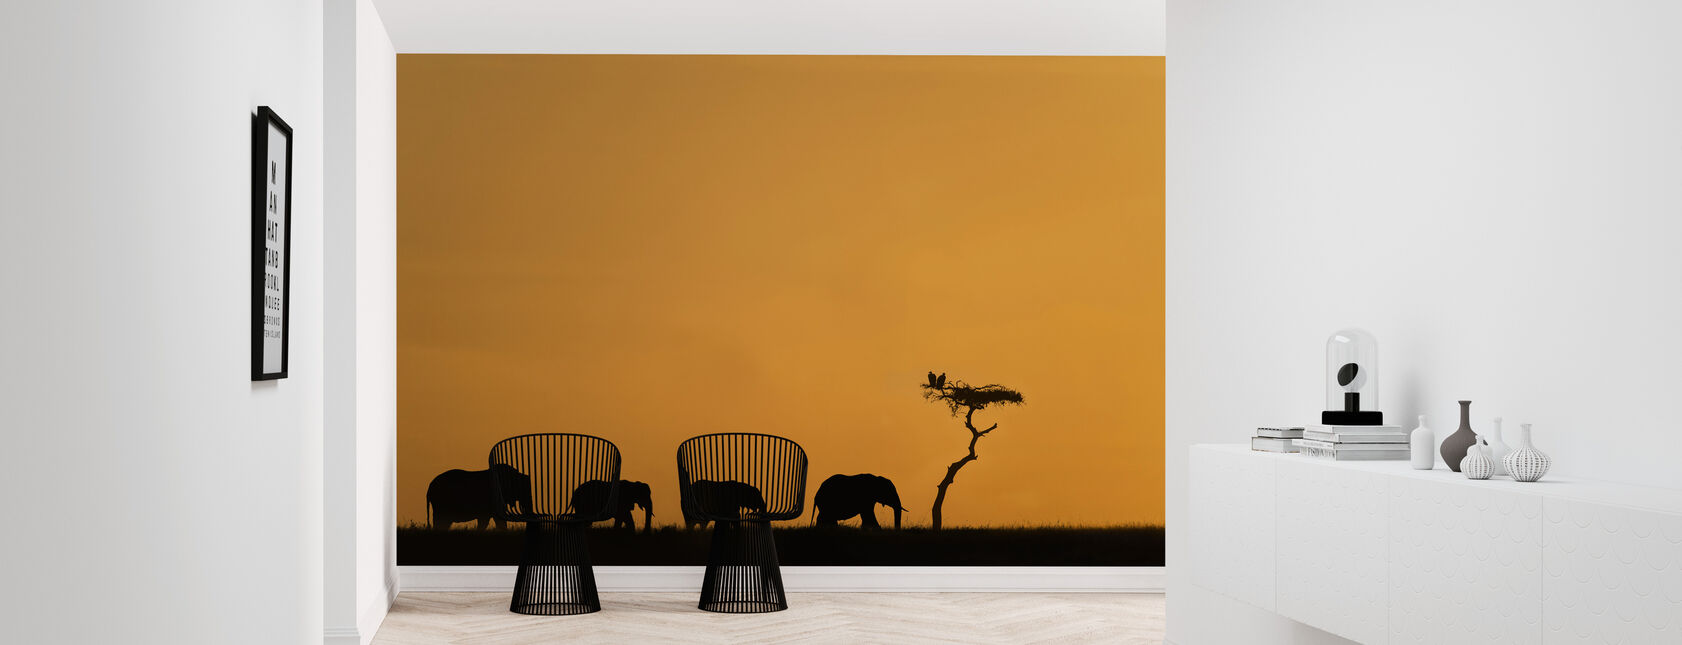 Herd of Elephants and Vultures at Sunrise - Wallpaper - Hallway